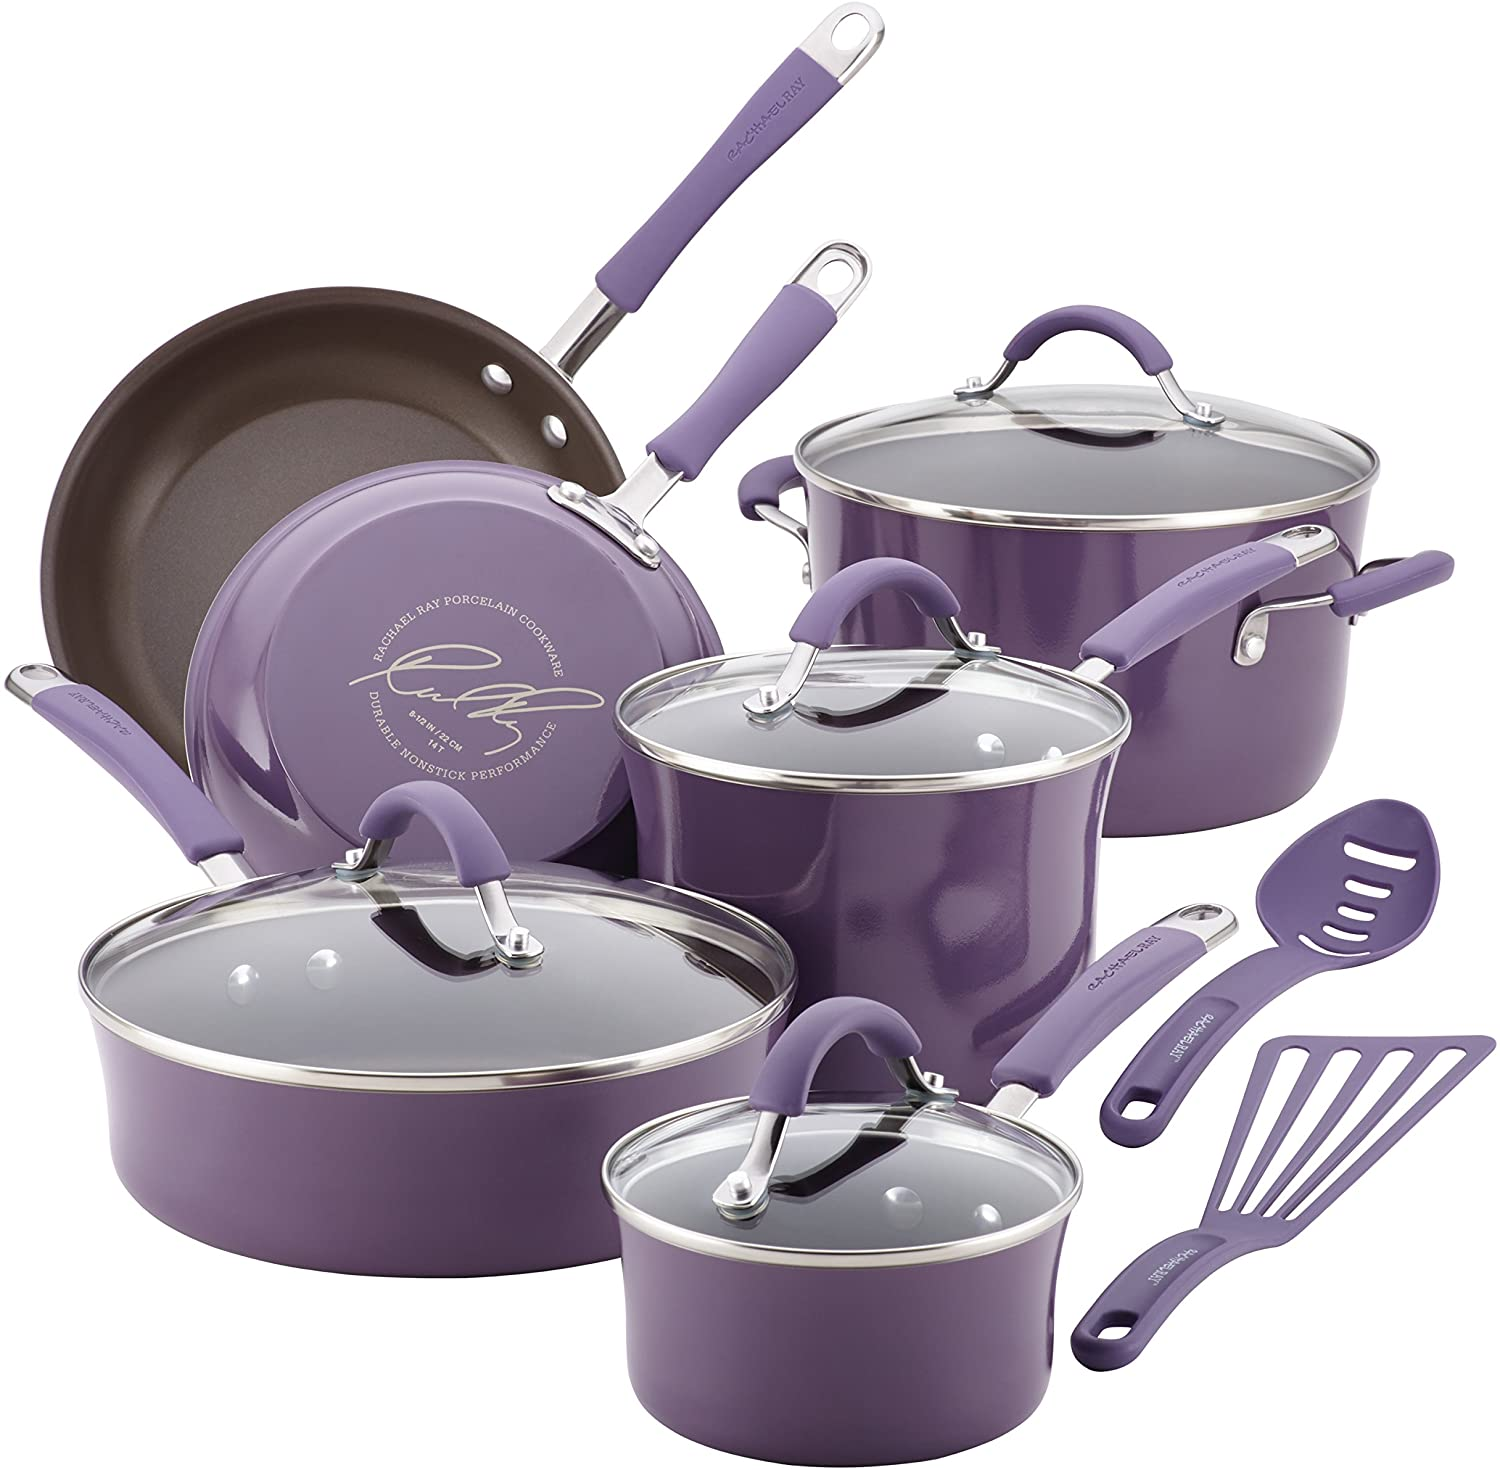 Rachael Ray Cucina Nonstick Cookware Pots and Pans Set, 12 Piece